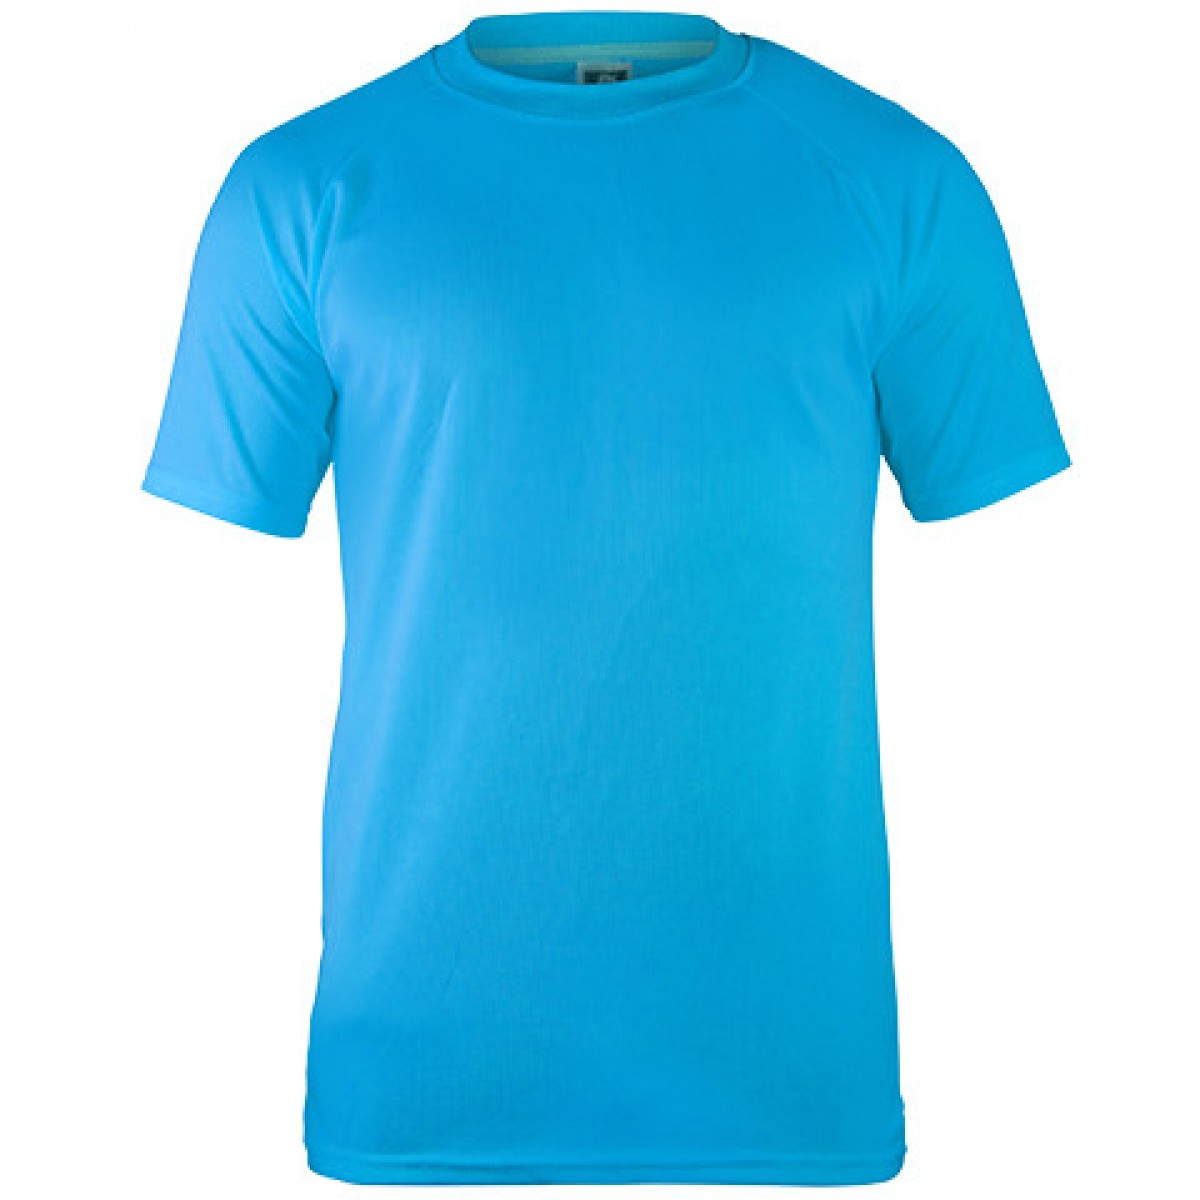 Short Sleeves Mesh Performance T-shirt-Blue-M